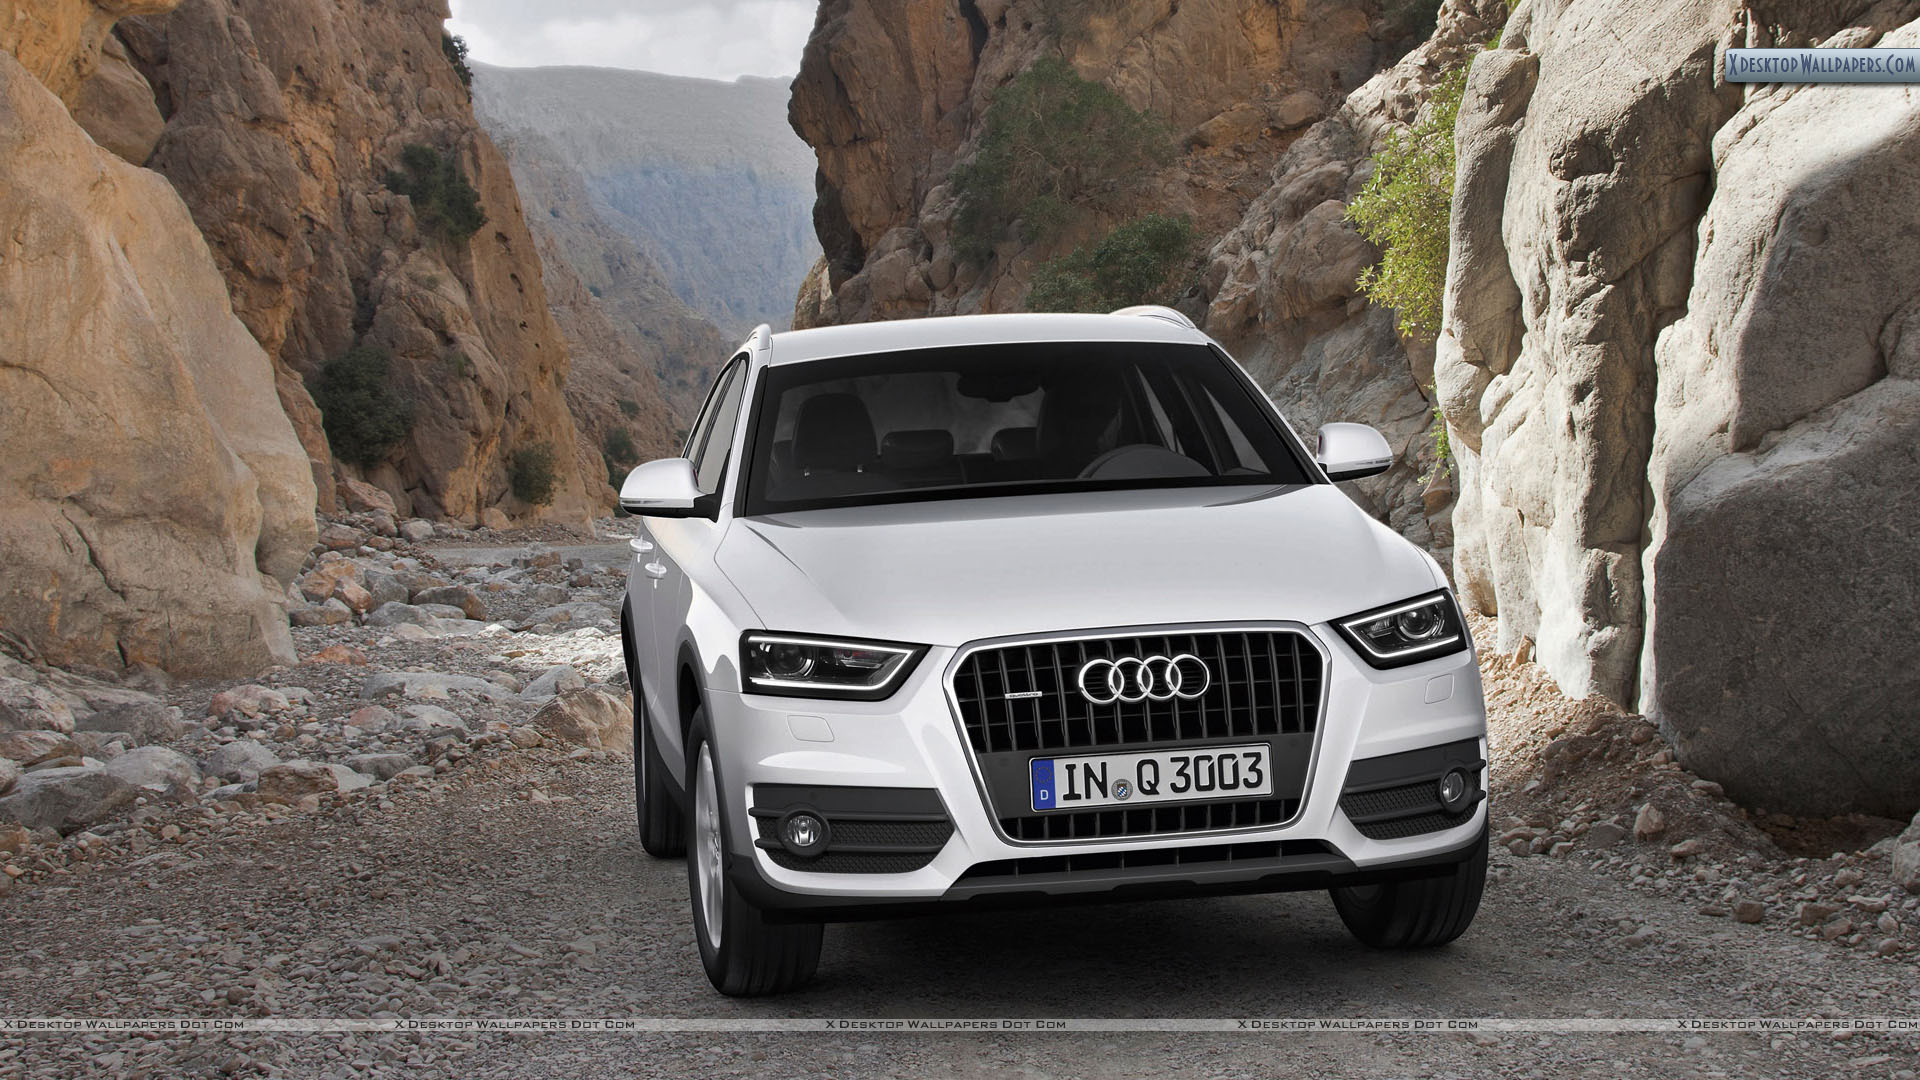 Audi Q3 White Color In A Valley Wallpaper